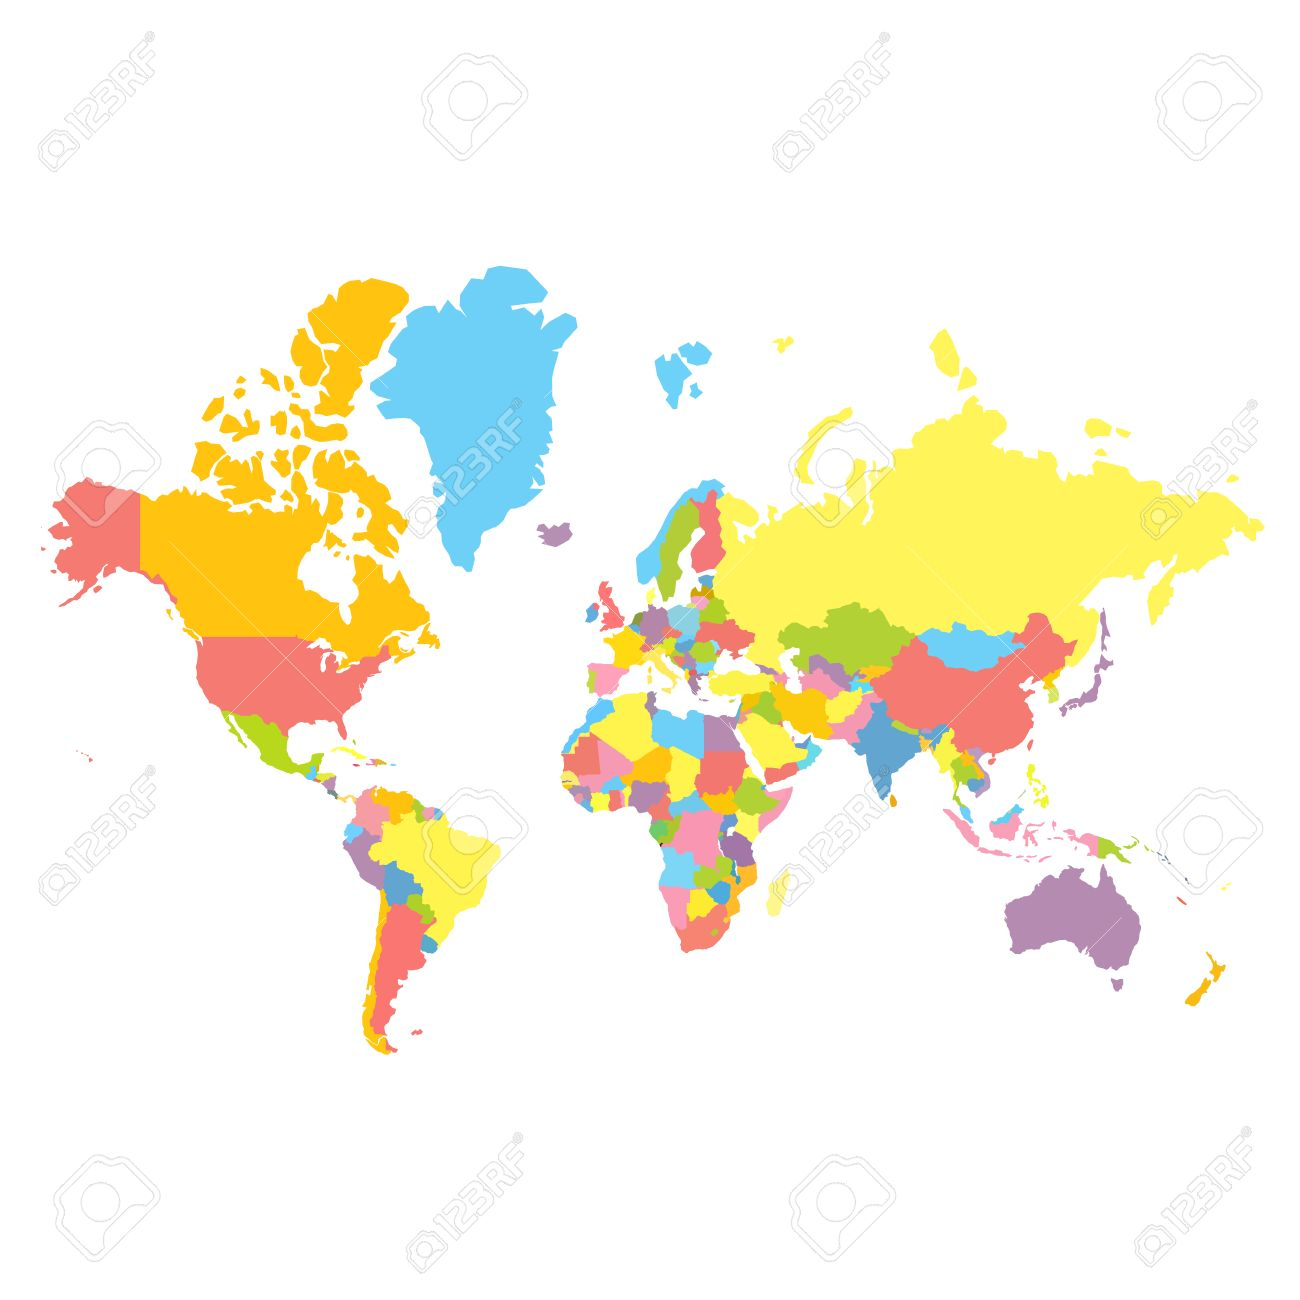 Colorfull political world map on white background each country colorfull political world map on white background each country colored in different color flat gumiabroncs